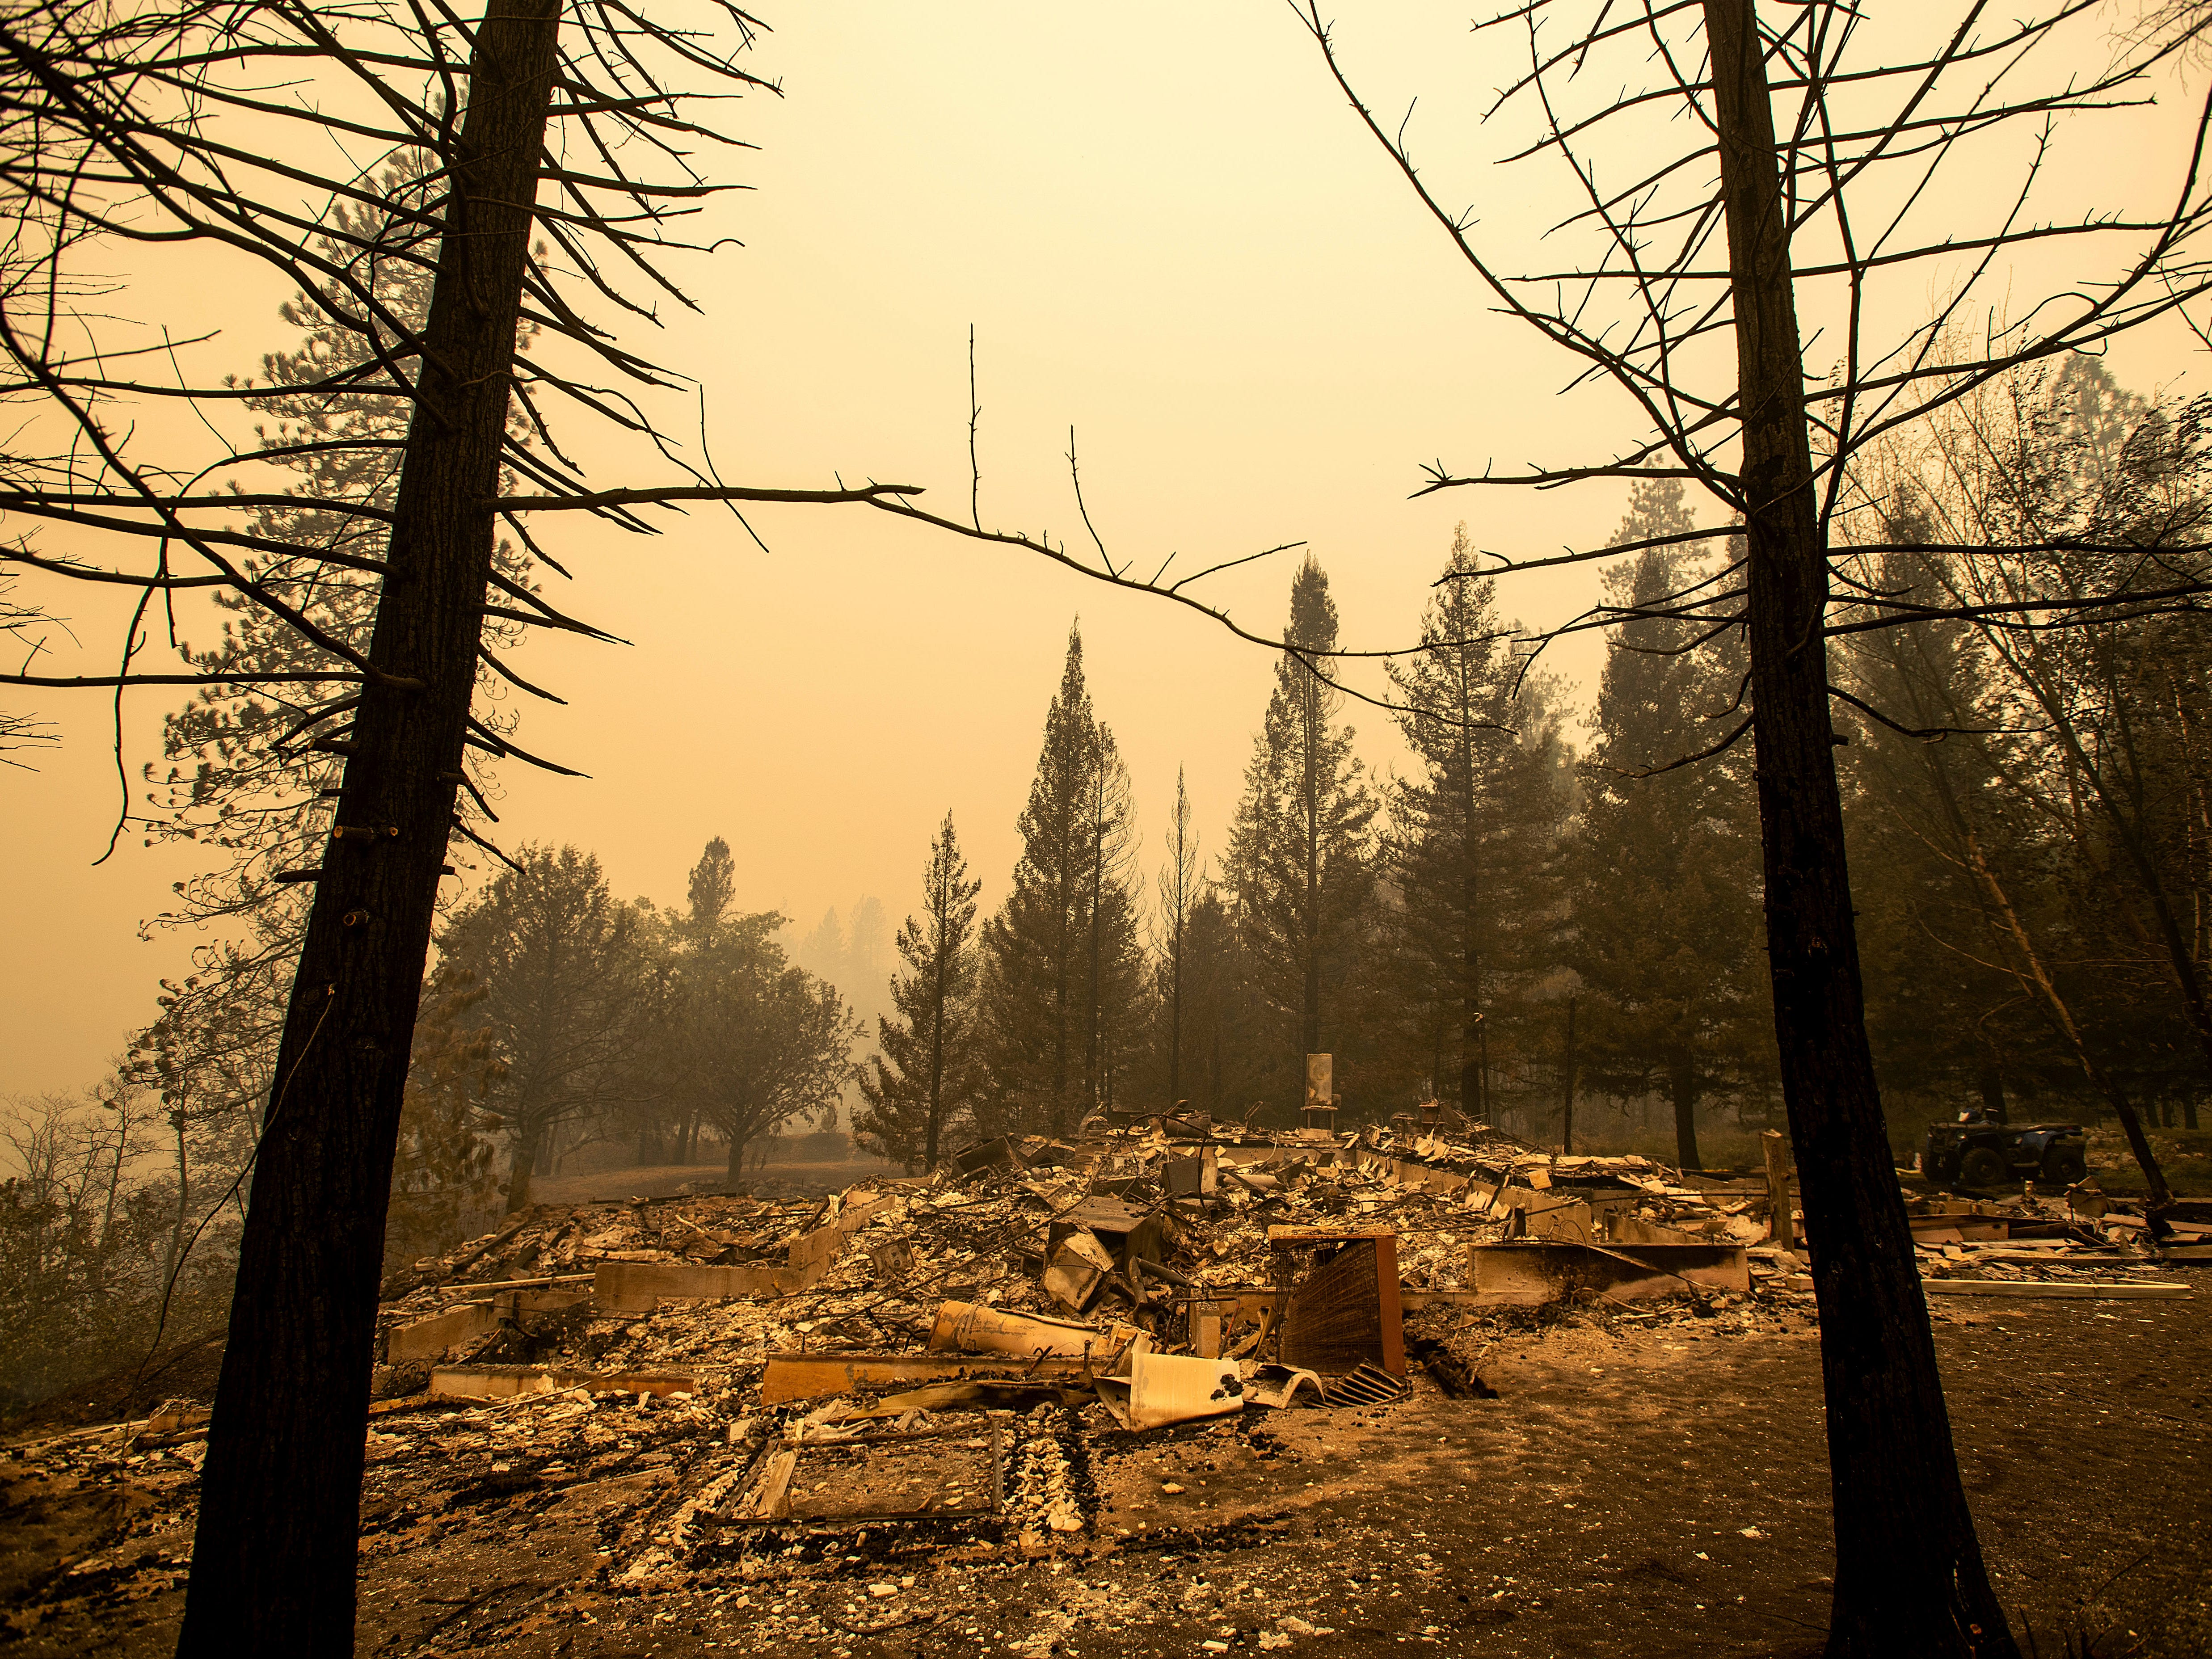 A home leveled by the Delta Fire rests in a clearing in Pollard Flat area of the Shasta-Trinity National Forest, Calif., on Thursday, Sept. 6, 2018. (AP Photo/Noah Berger) ORG XMIT: CANB108